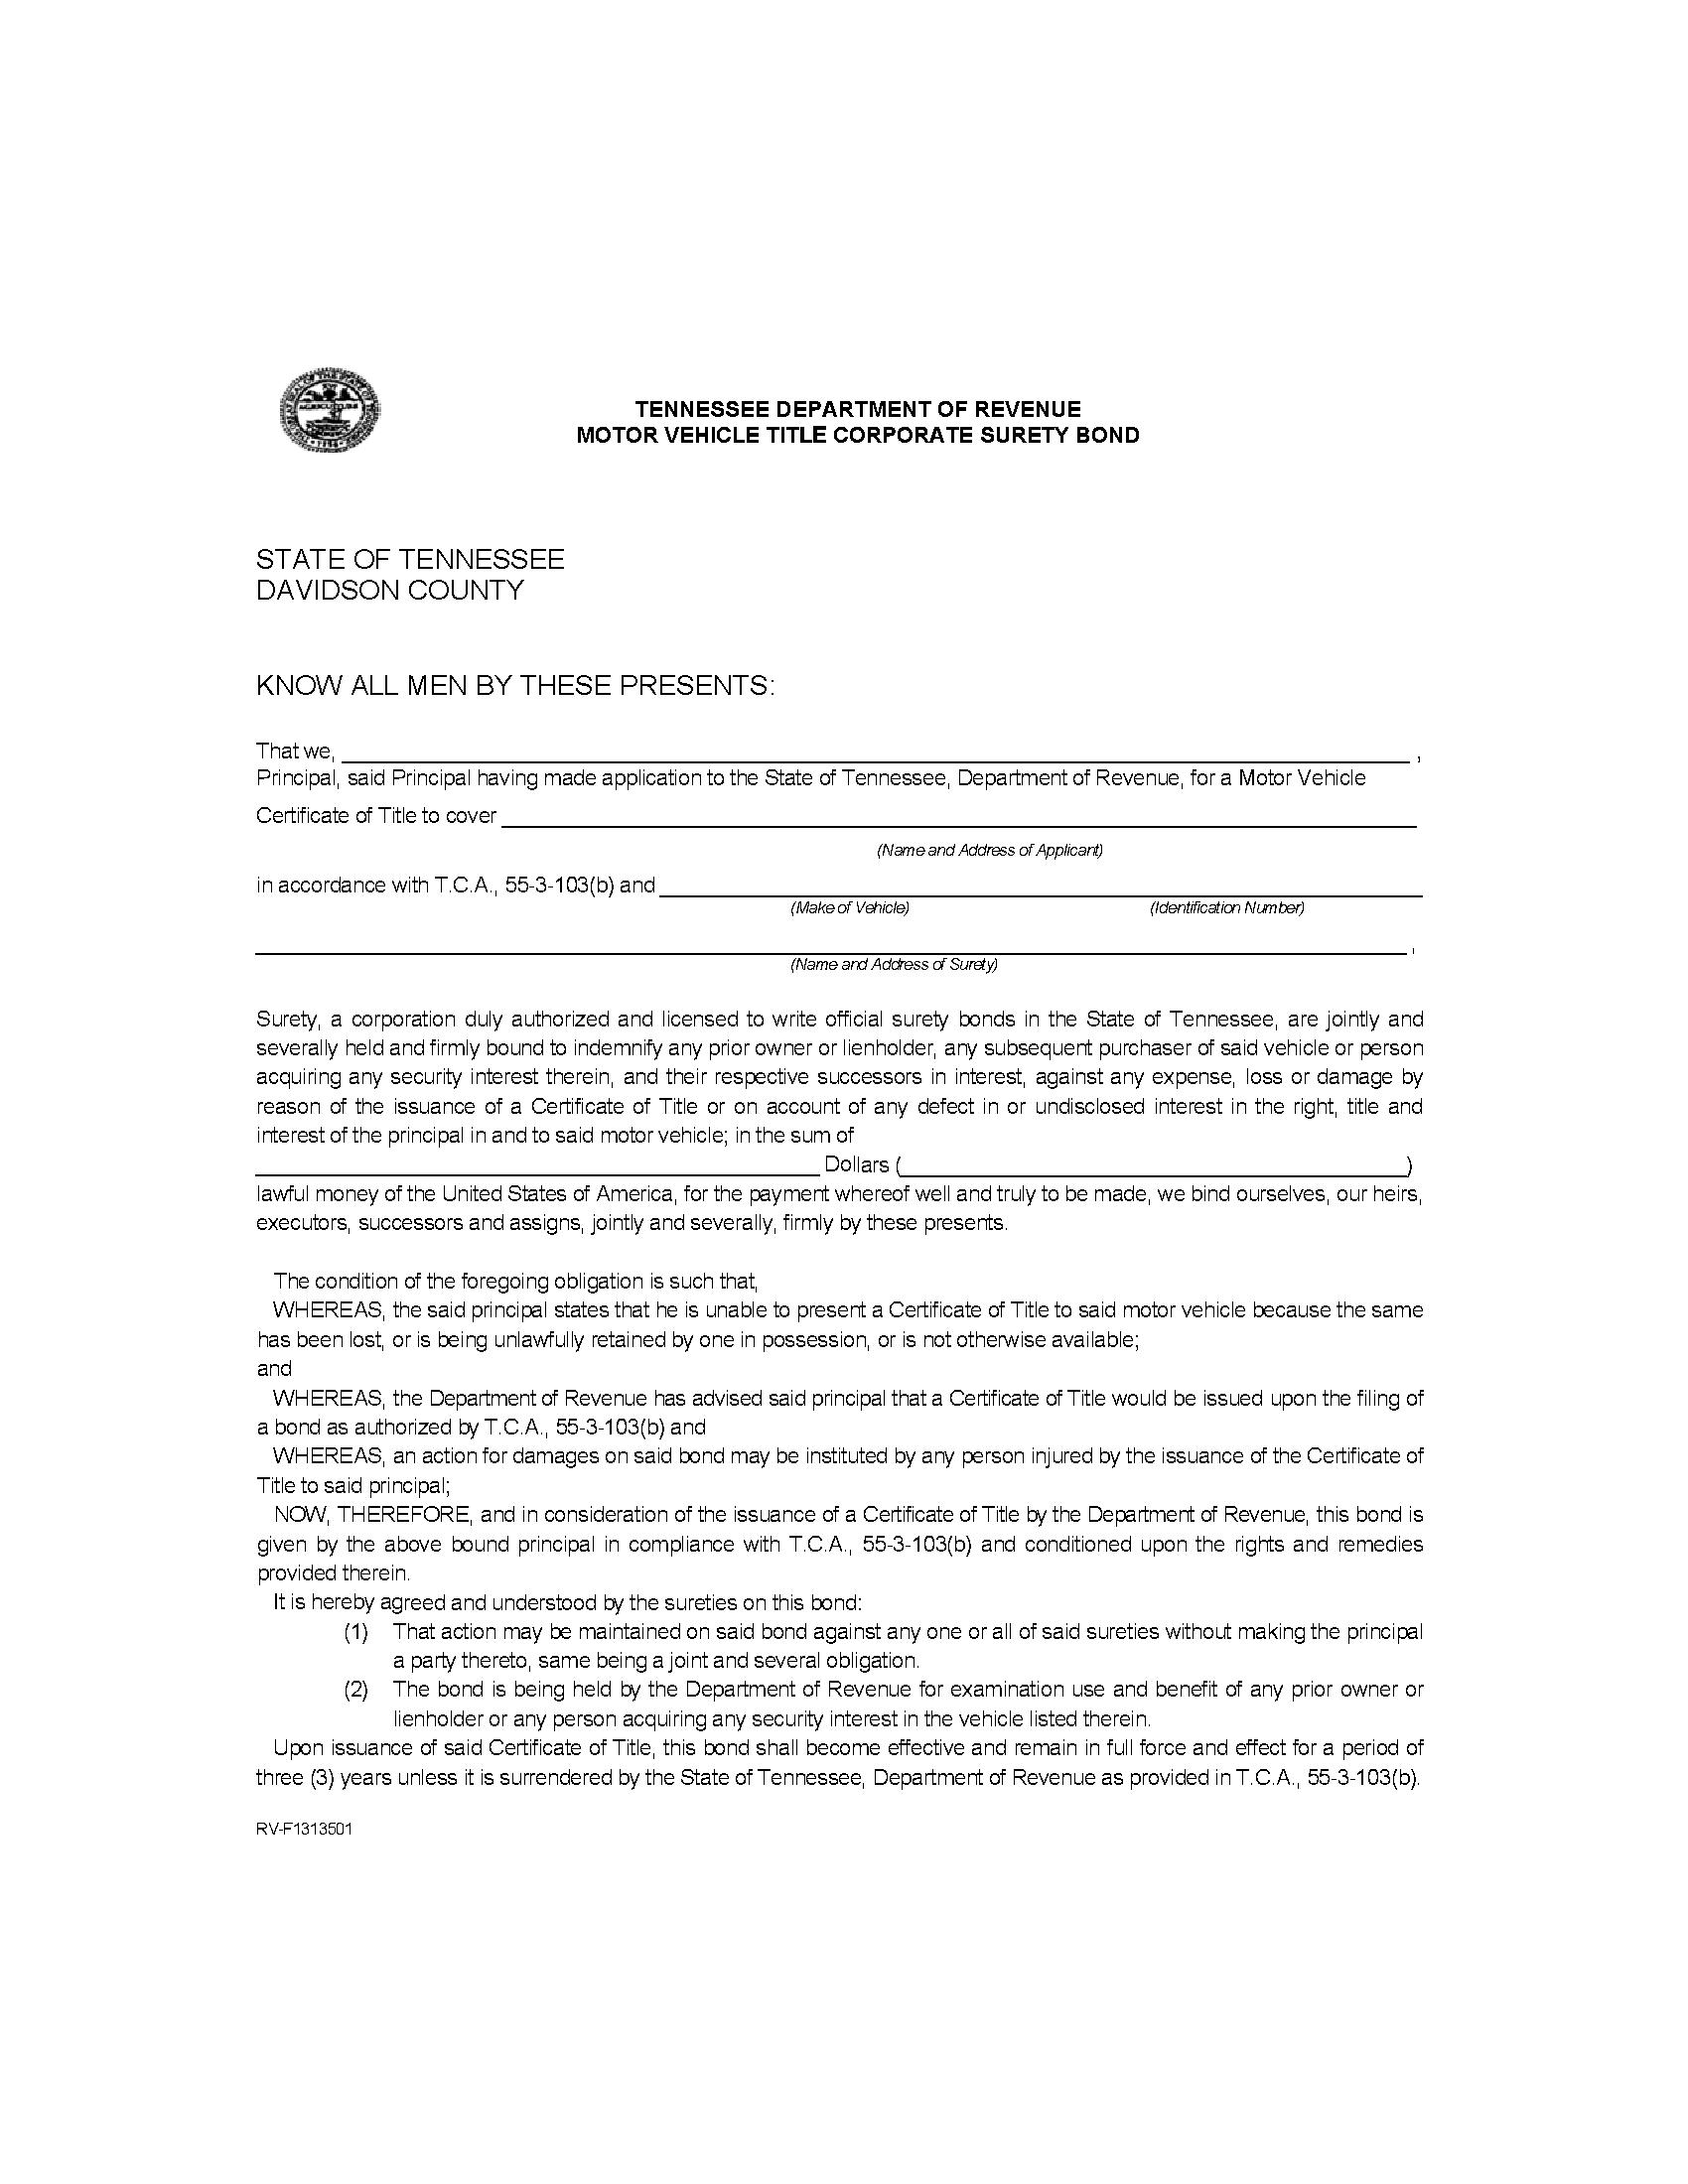 State of Tennessee Motor Vehicle Certificate of Title Bond sample image